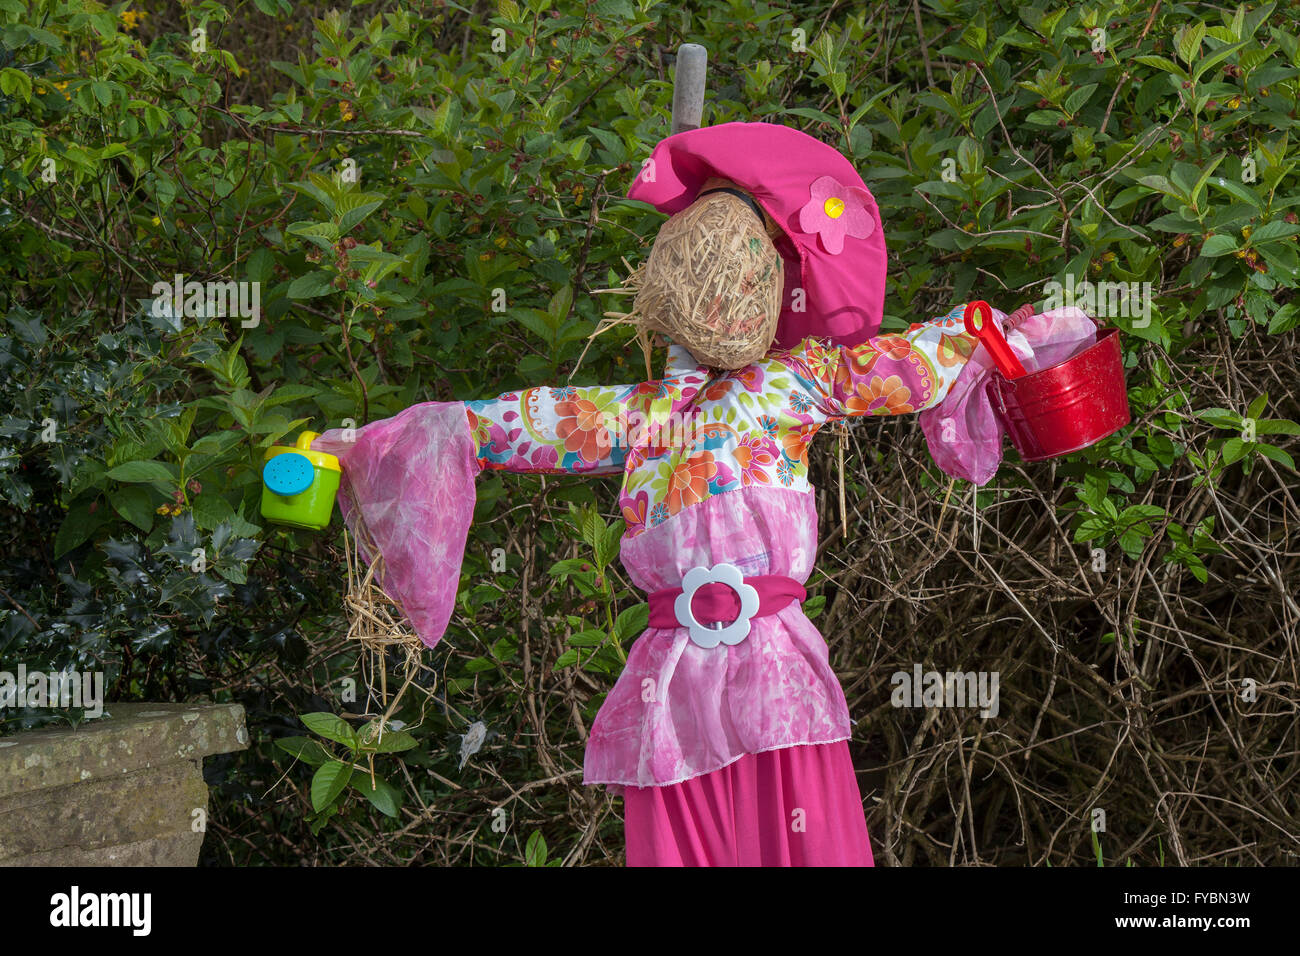 Wray, Lancashire, UK 25th April, 2016.  Vision in Pink at Wray's Annual Scarecrow Festival.  The villagers of - Stock Image